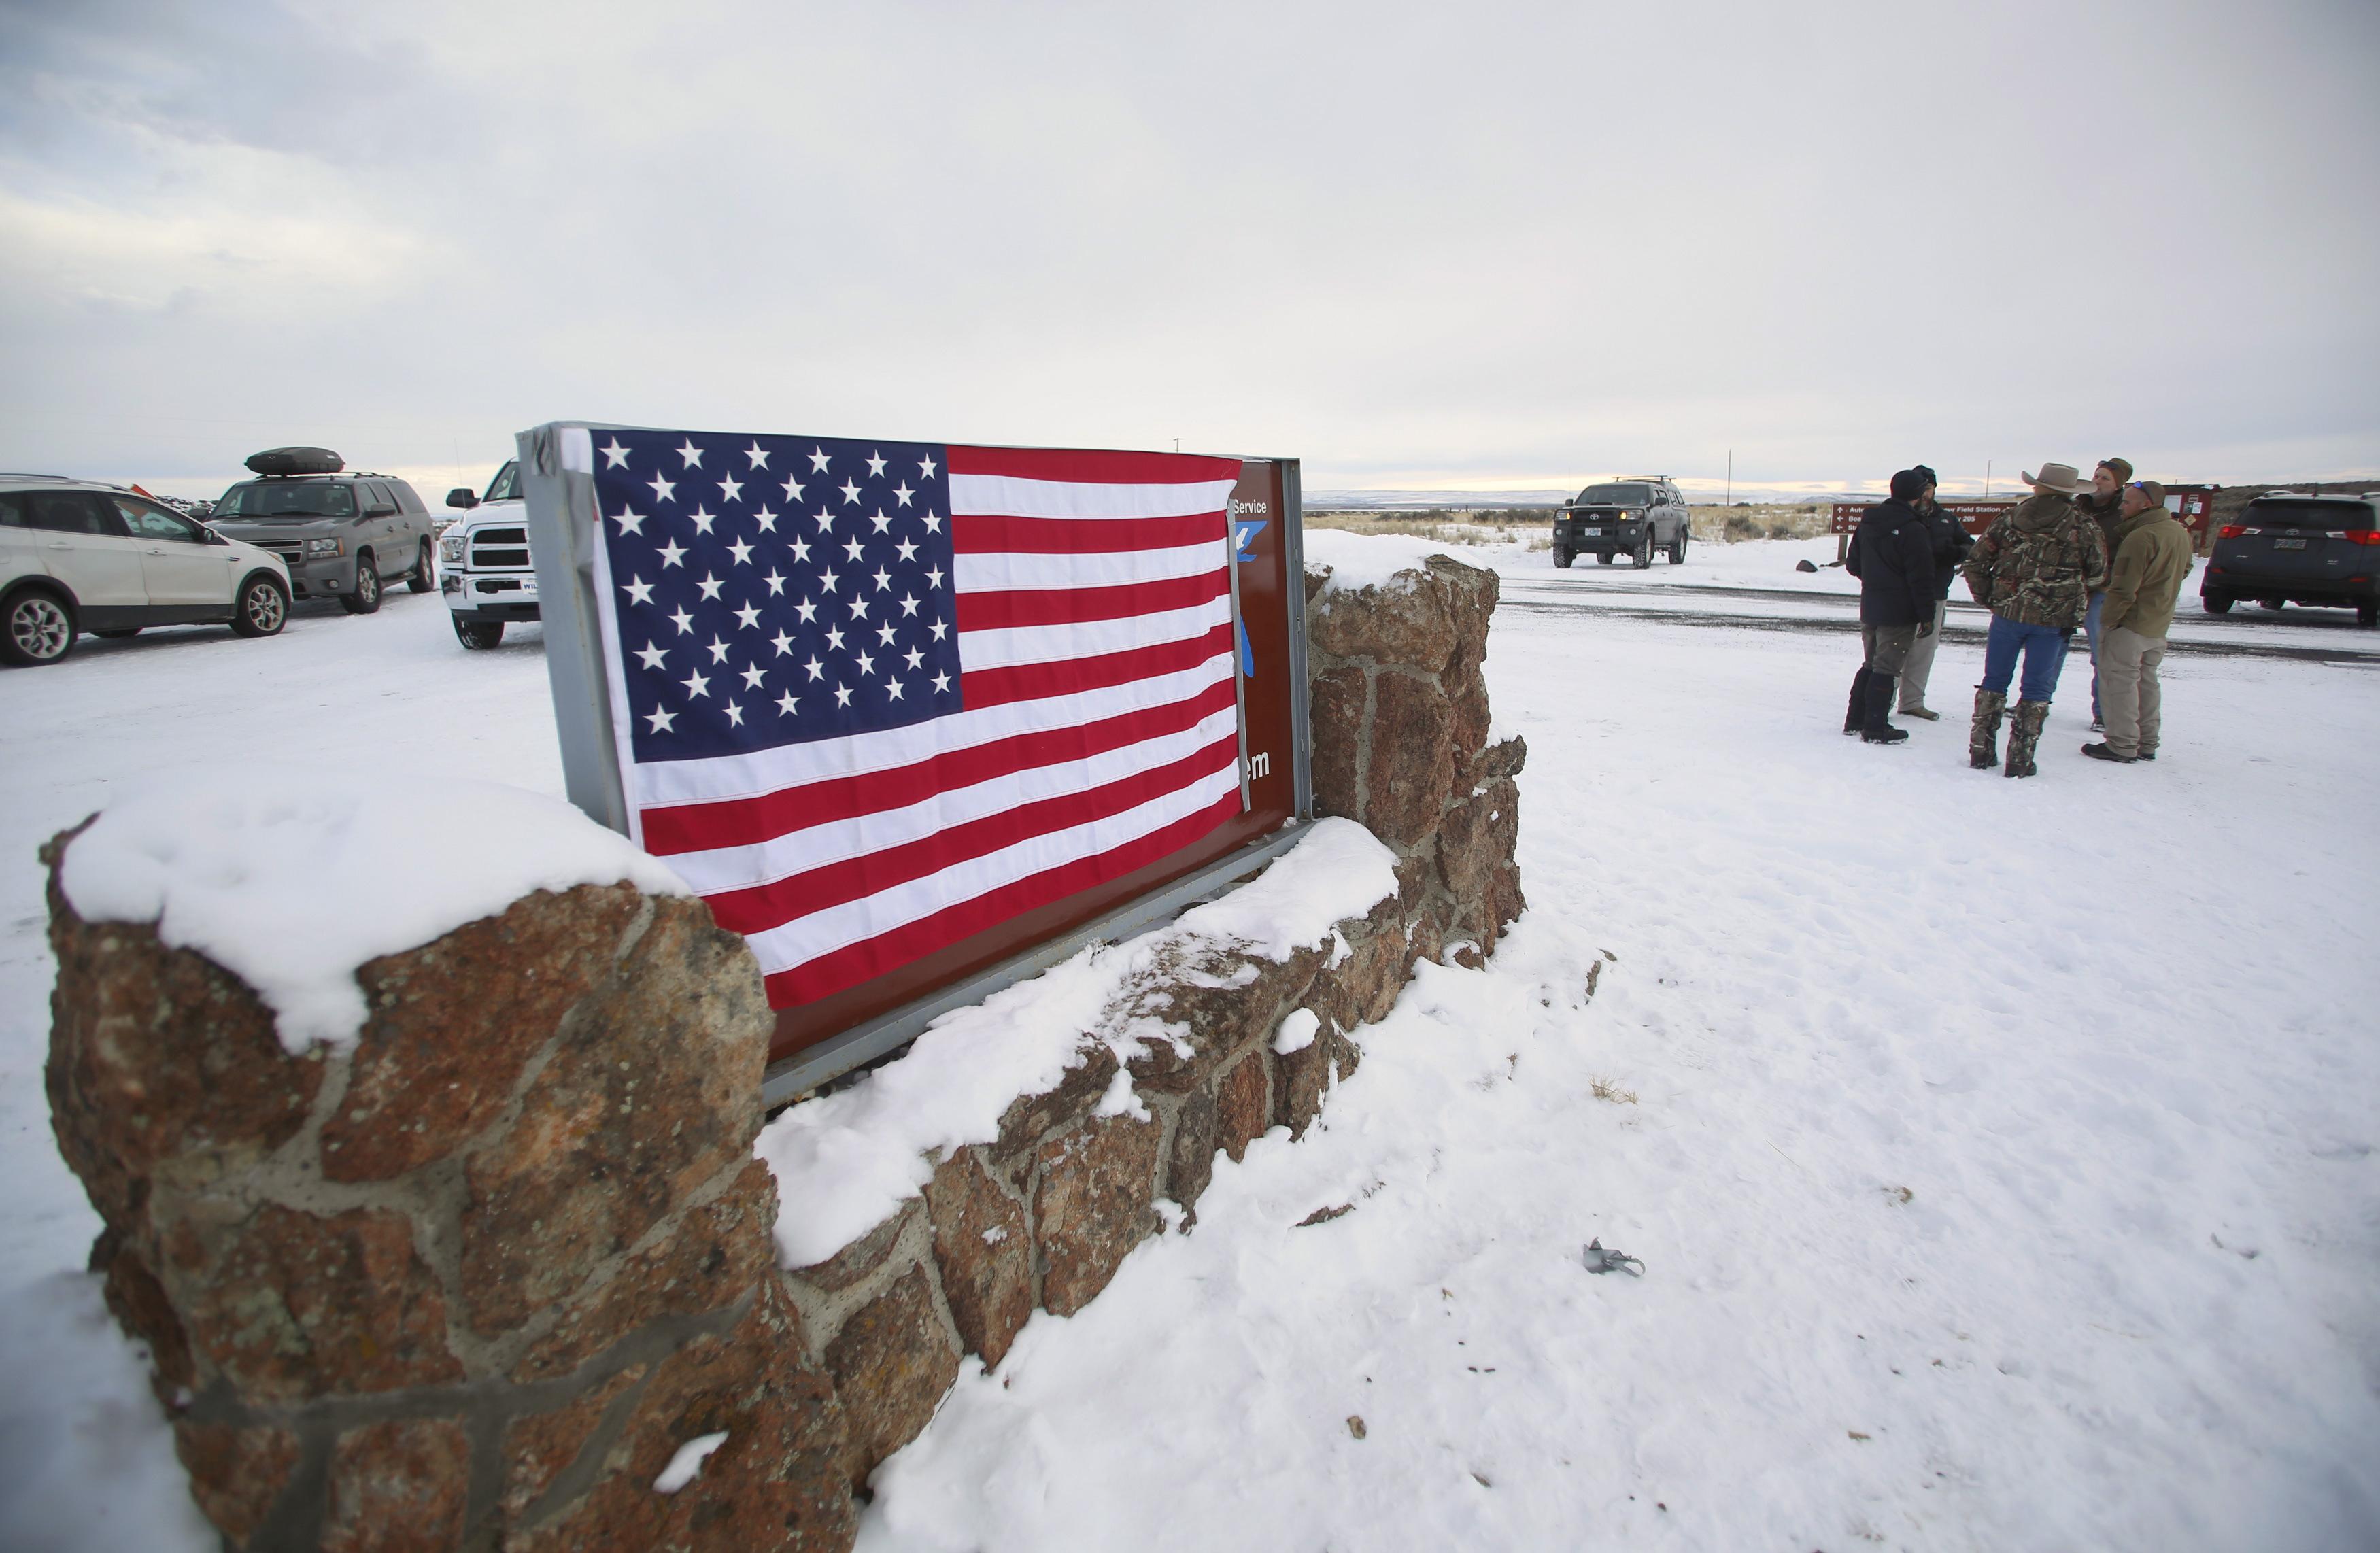 A U.S. flag covers a sign at the entrance of the Malheur National Wildlife Refuge near Burns, Oregon. REUTERS/Jim Urquhart